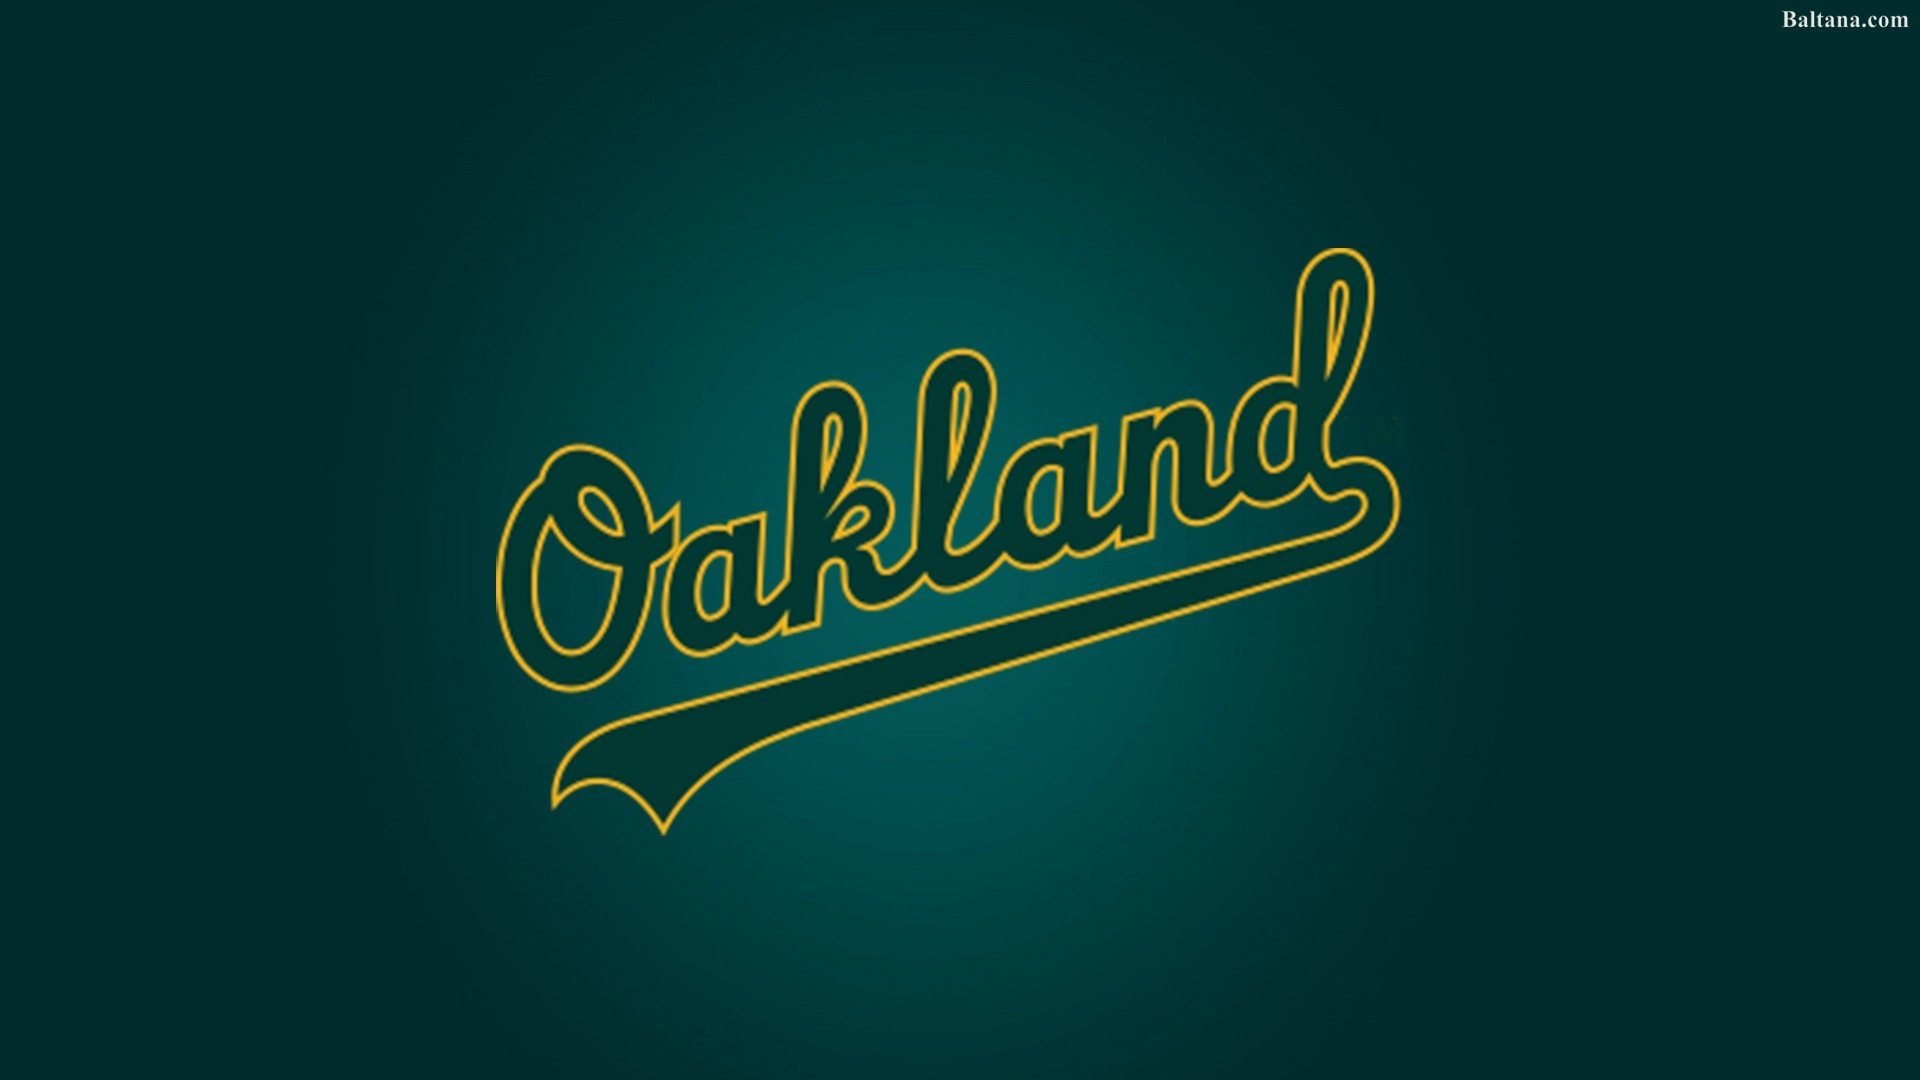 Oakland Athletics Wallpaper 8ID94P8 Picserio   Picseriocom 1920x1080